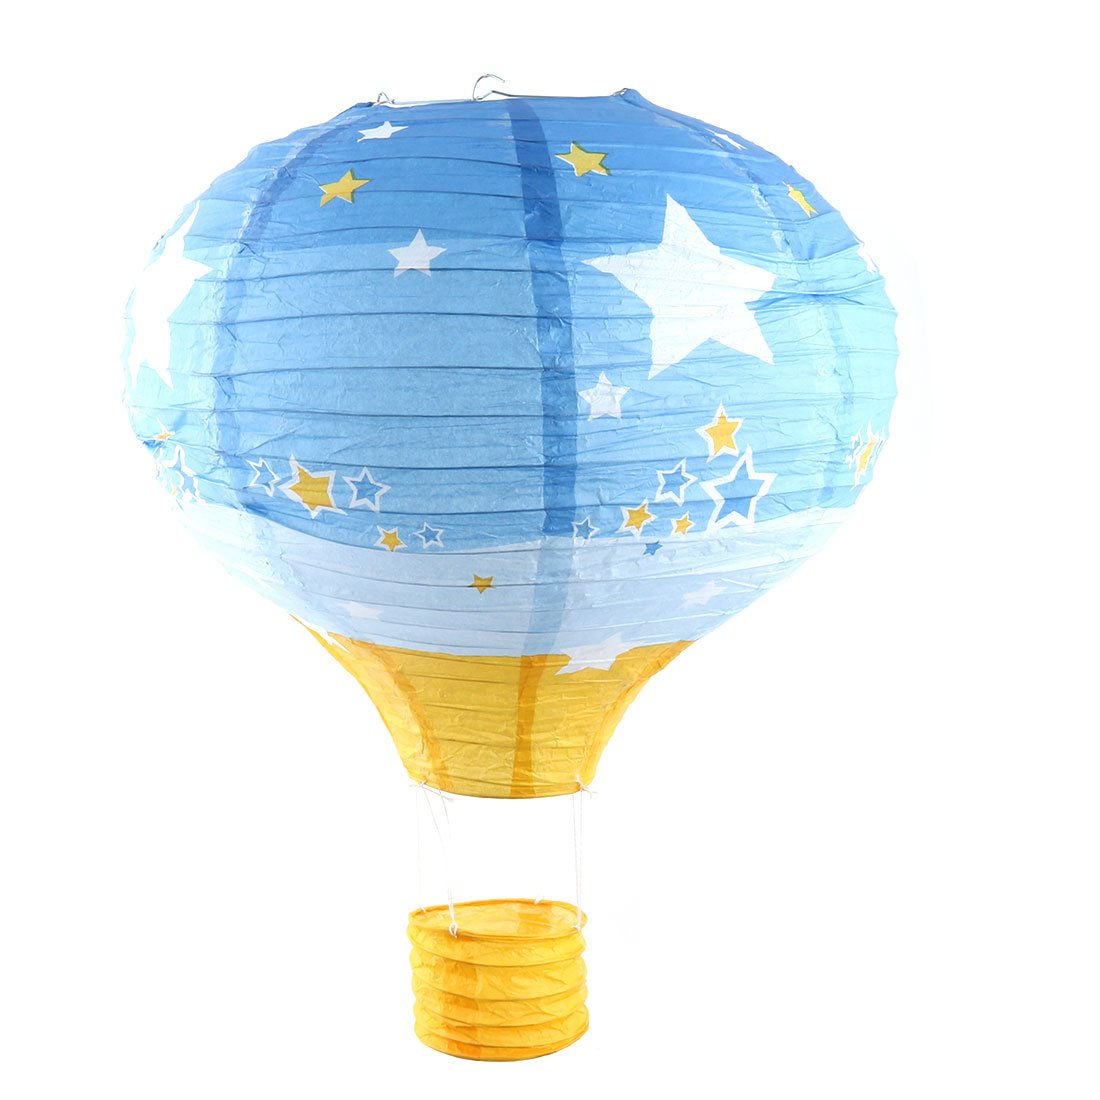 uxcell Paper Star Pattern Wedding Holiday DIY Room Hanging Lightless Hot Air Balloon Lantern 16 Inches Dia Blue